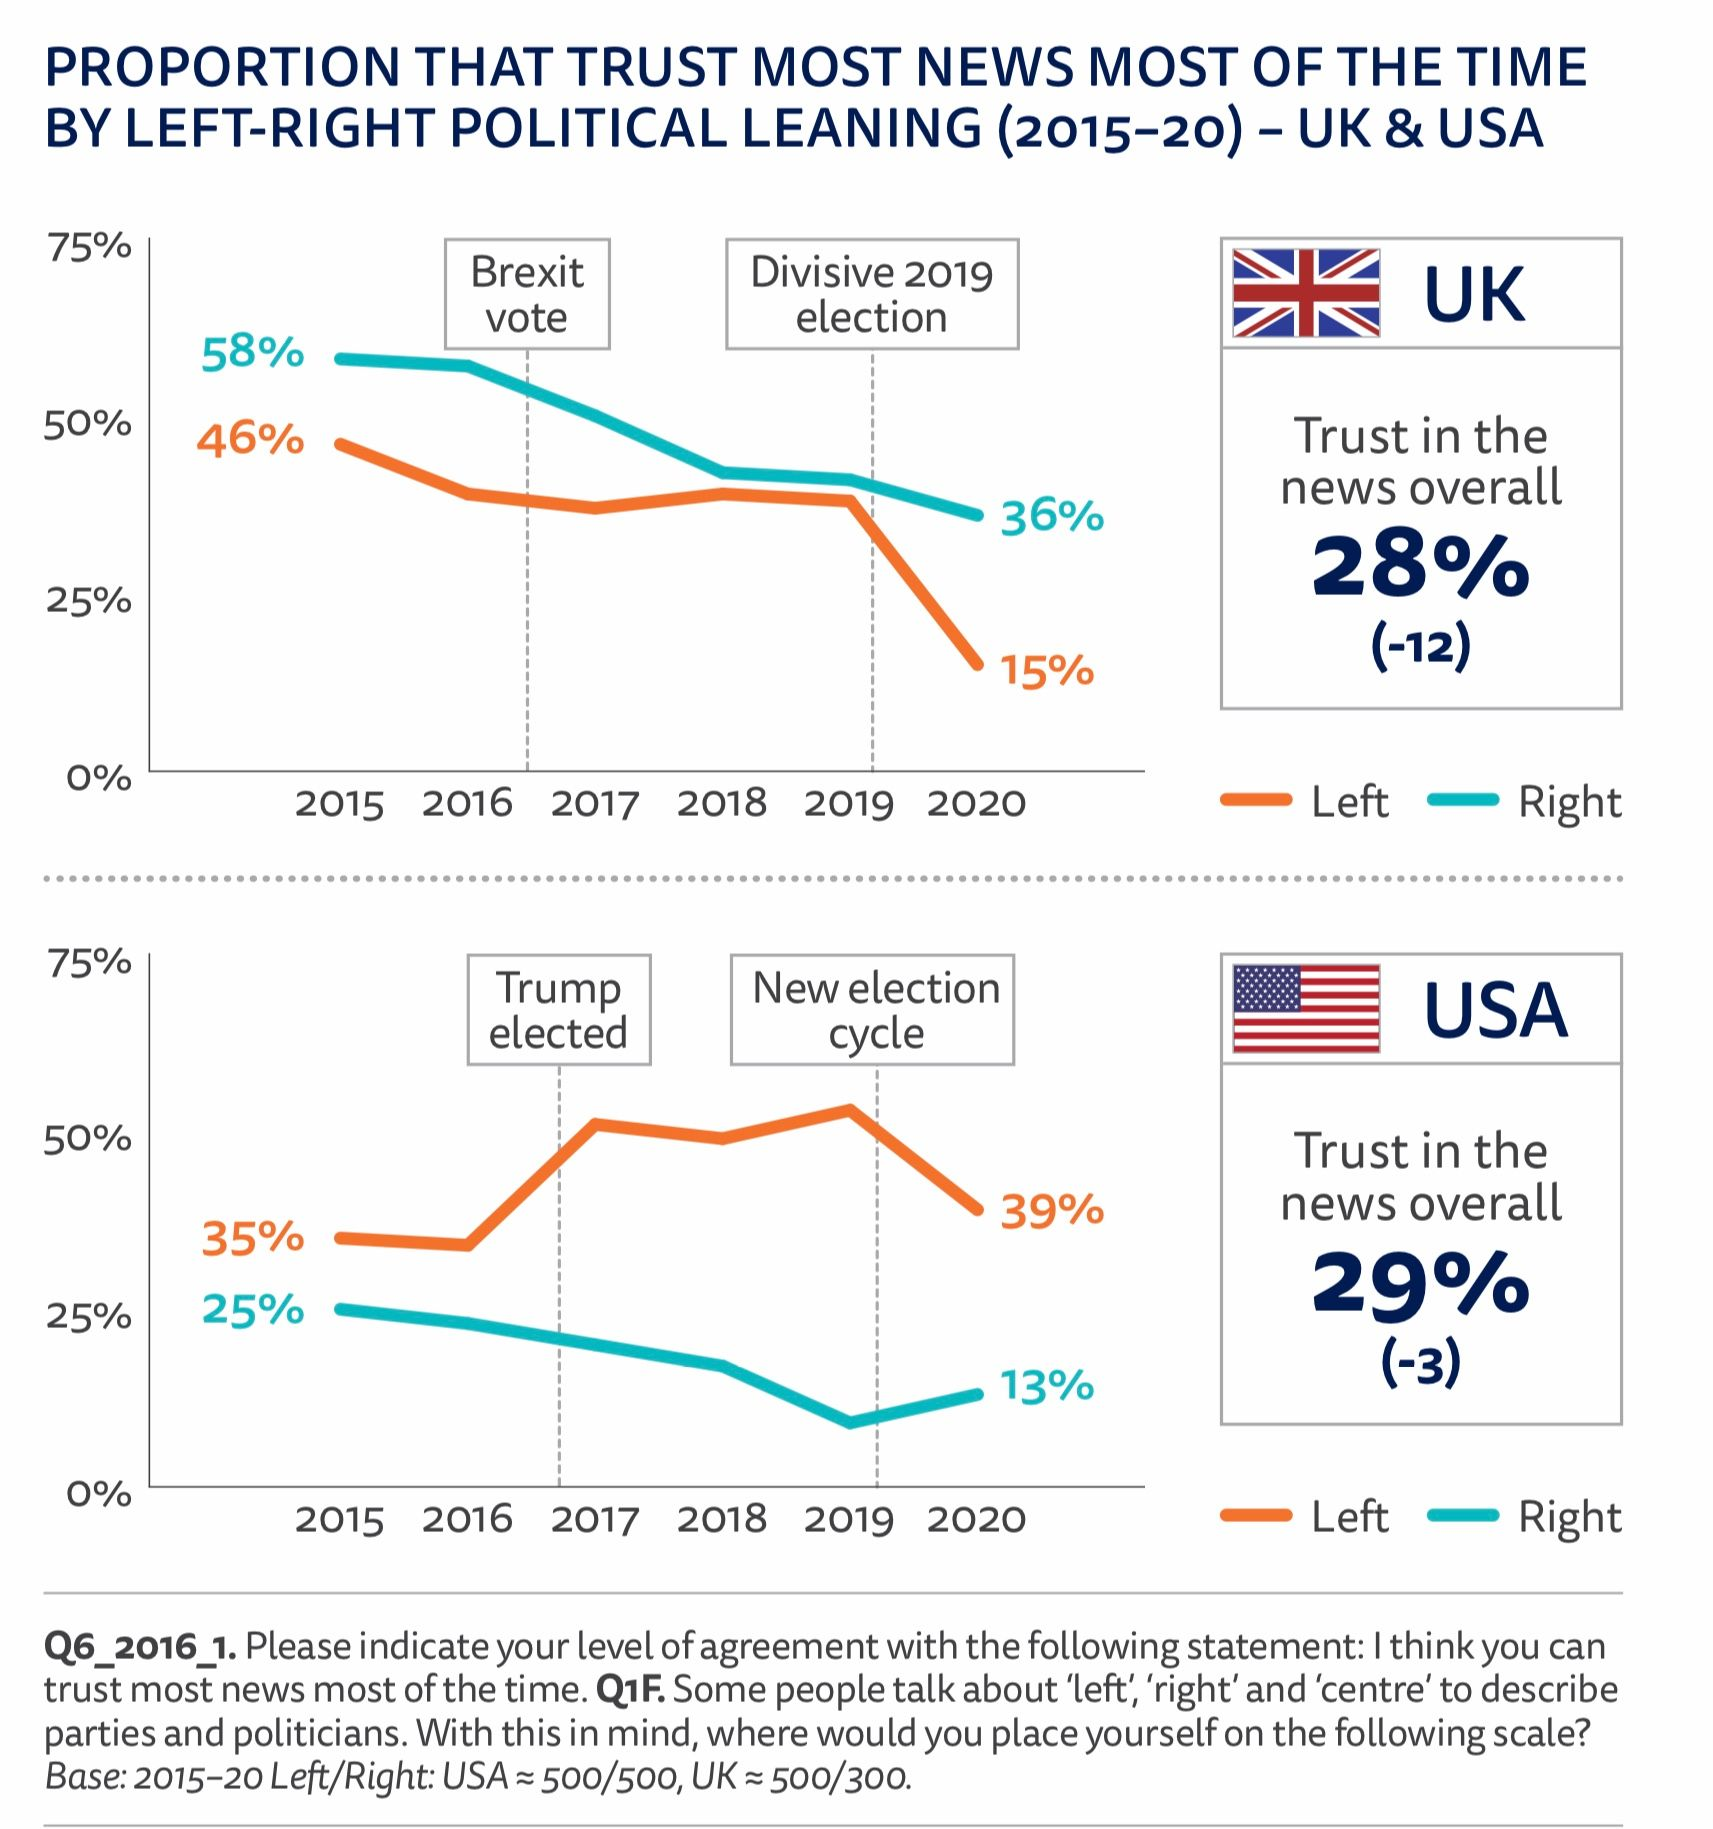 Trust in media by political alignment in the US and UK